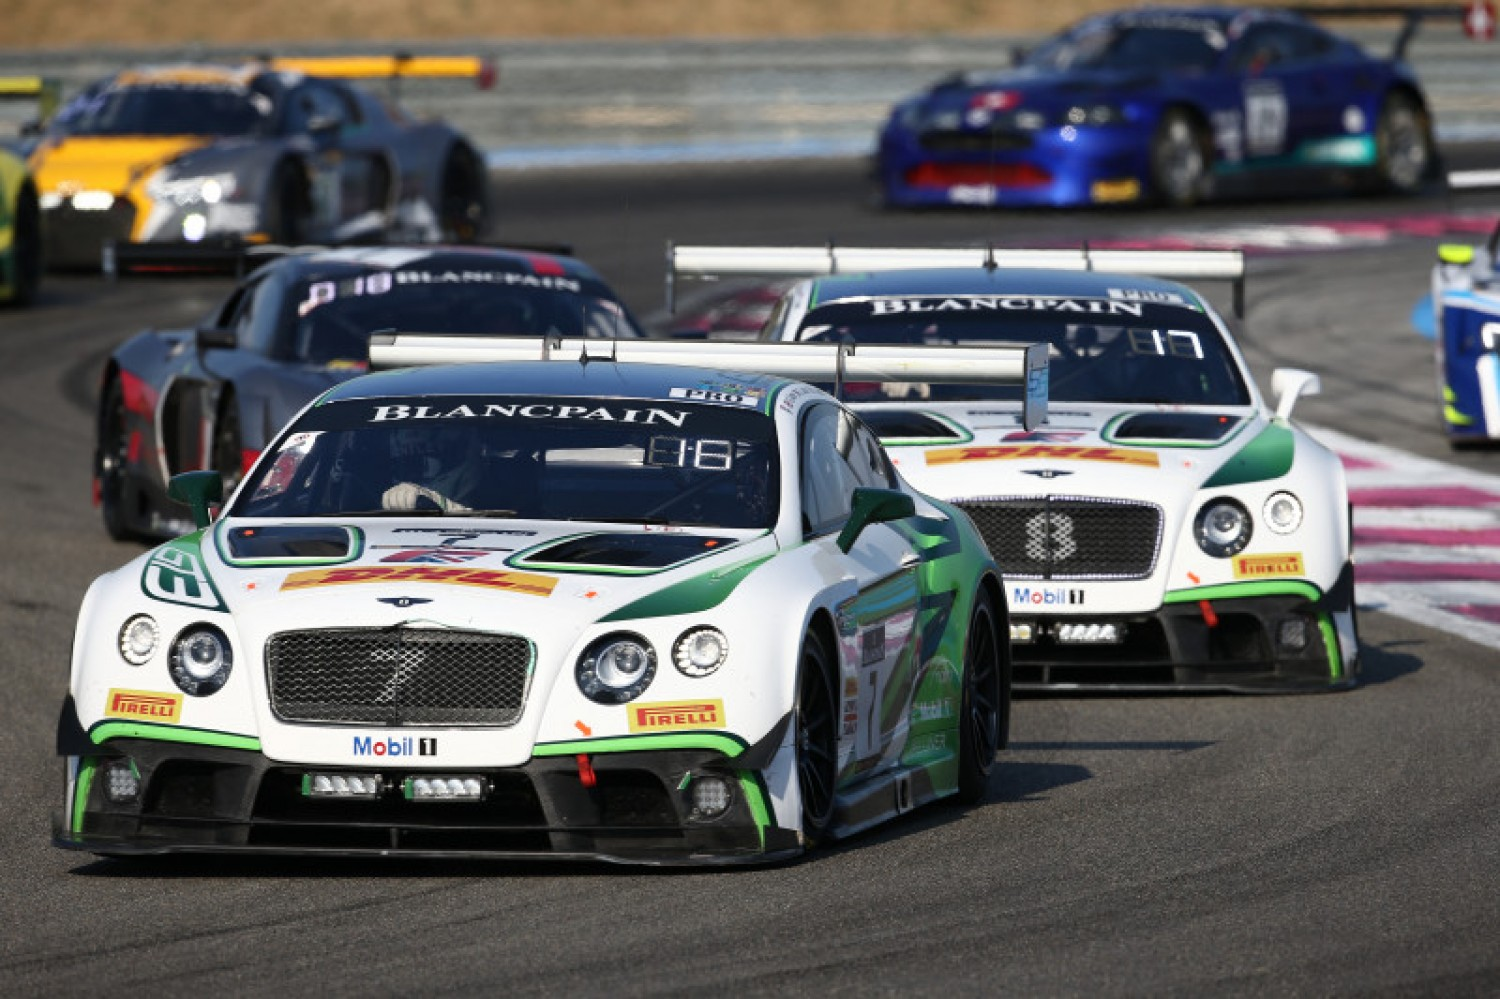 THREE CONTINENTAL GT3S TO CONTEST 24 HOURS OF SPA